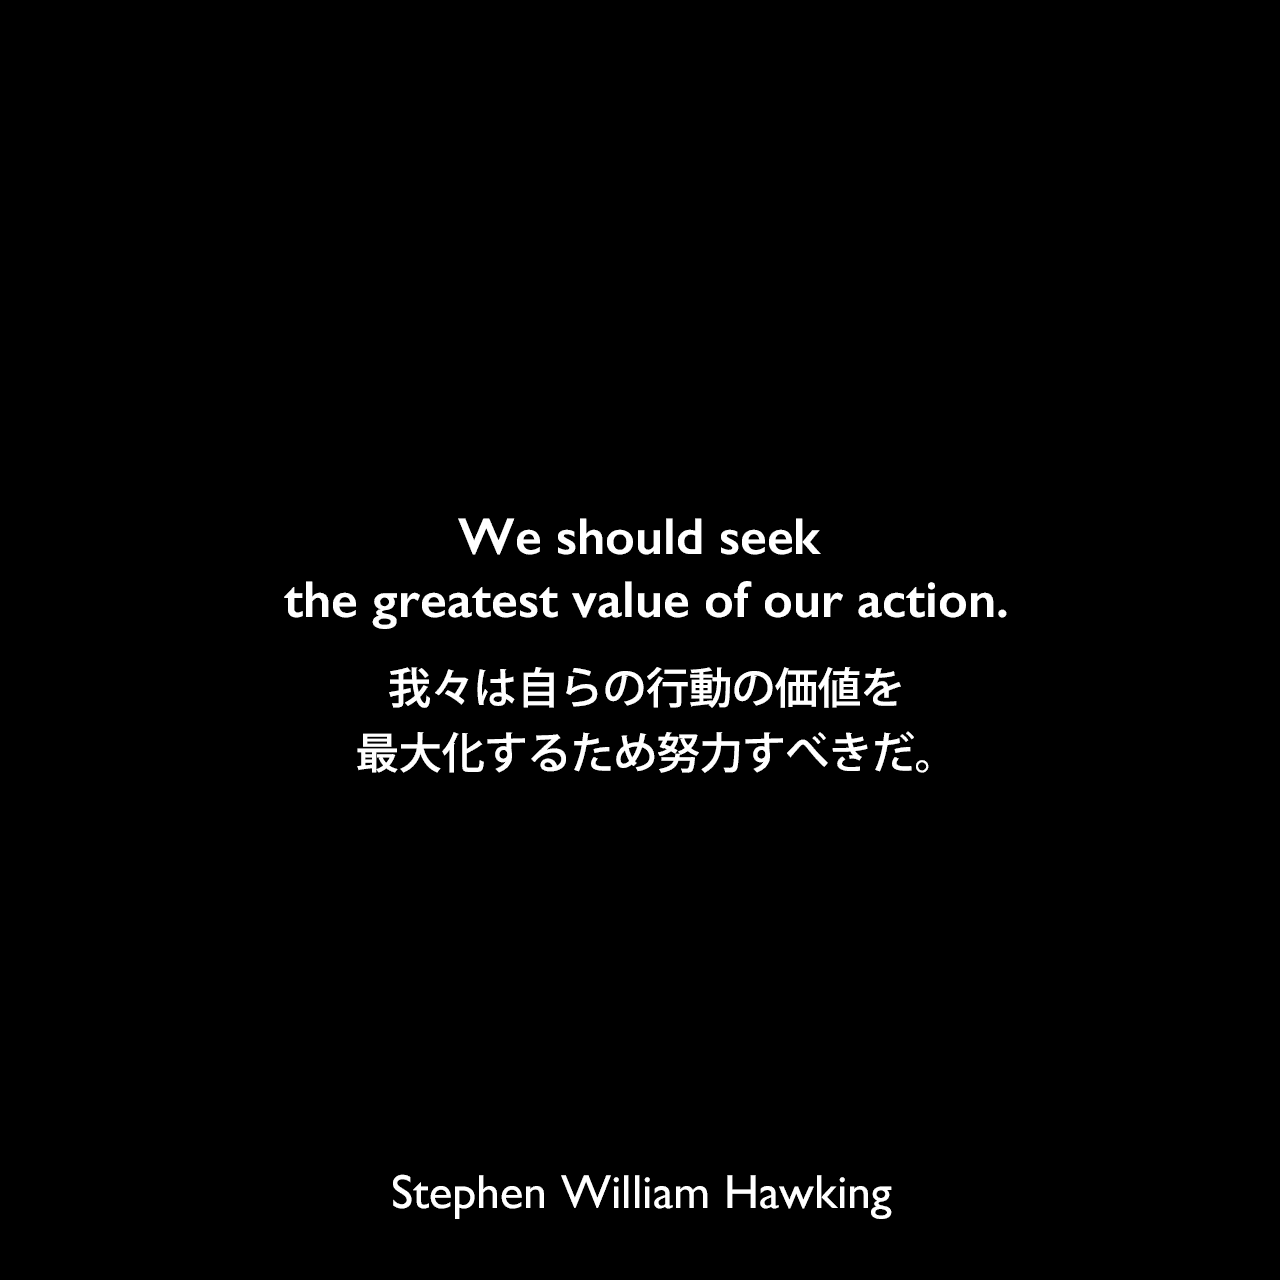 We should seek the greatest value of our action.我々は自らの行動の価値を最大化するため努力すべきだ。